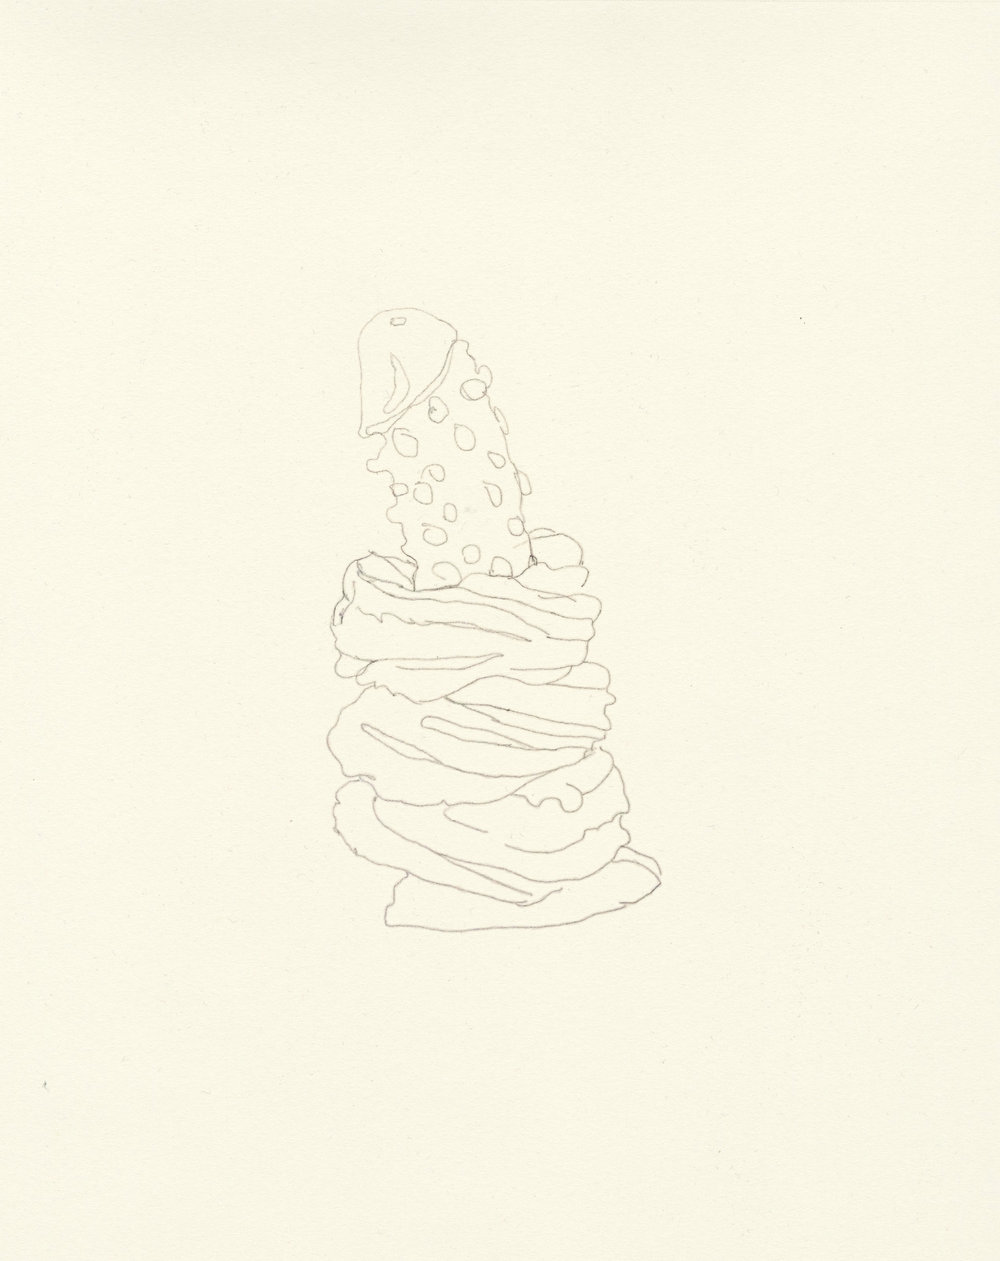 My Boyfriend is a Peacekeeper xxvii  | graphite on paper | 9.5INx12IN    Excerpt from My Boyfriend is a Peacekeeper Book ii : I masturbated and had my first donut in months. Not in that order.